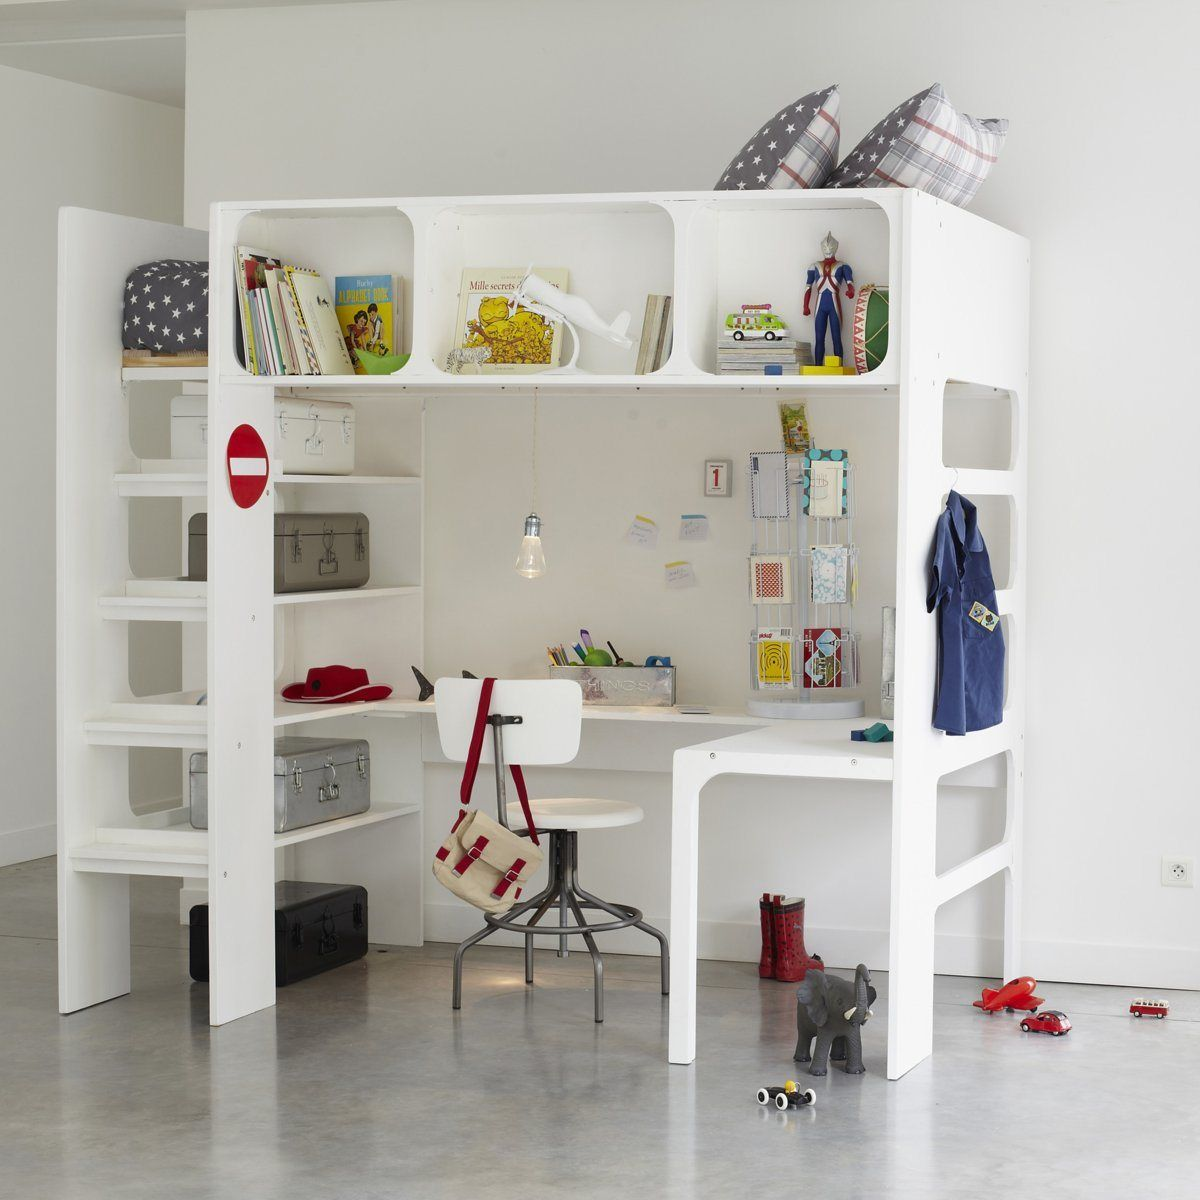 La redoute lit bureau et commode gain de place bcn amenagement int pinterest gain de - Bureau ordinateur gain de place ...